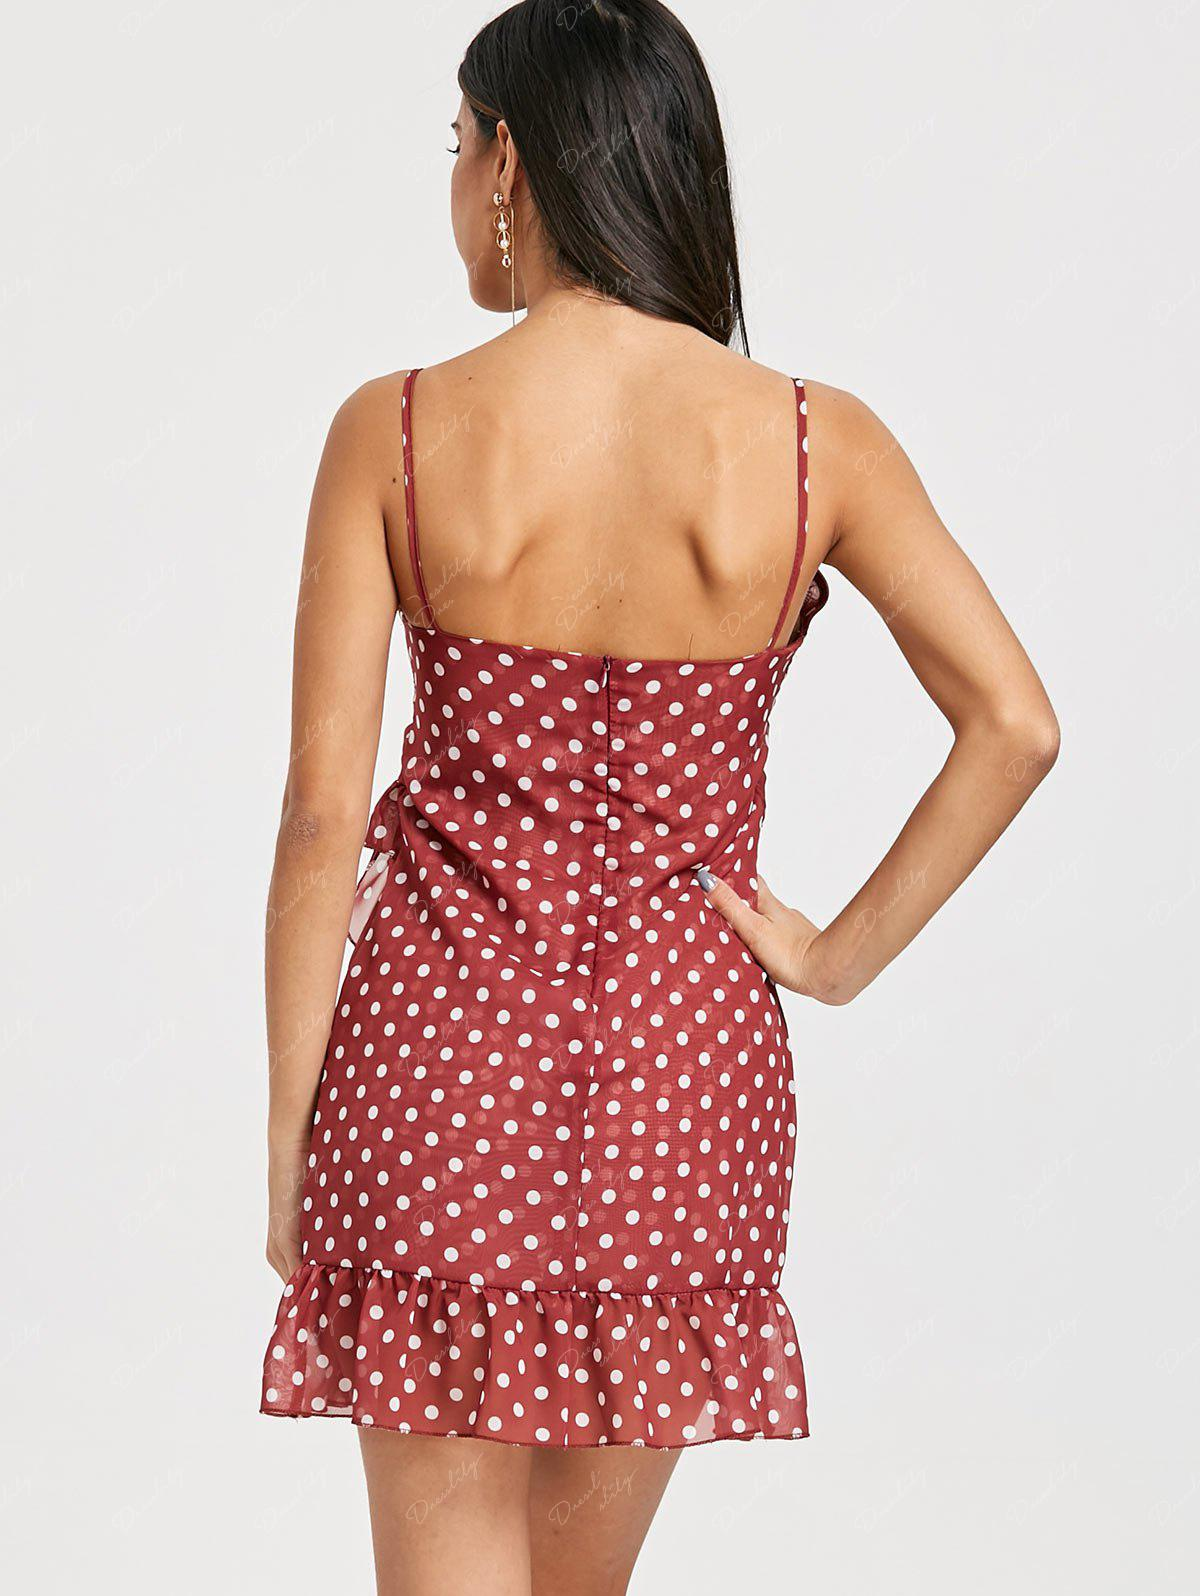 Polka Dot Ruffle Cami Asymmetrical Dress - RED BROWN 2XL